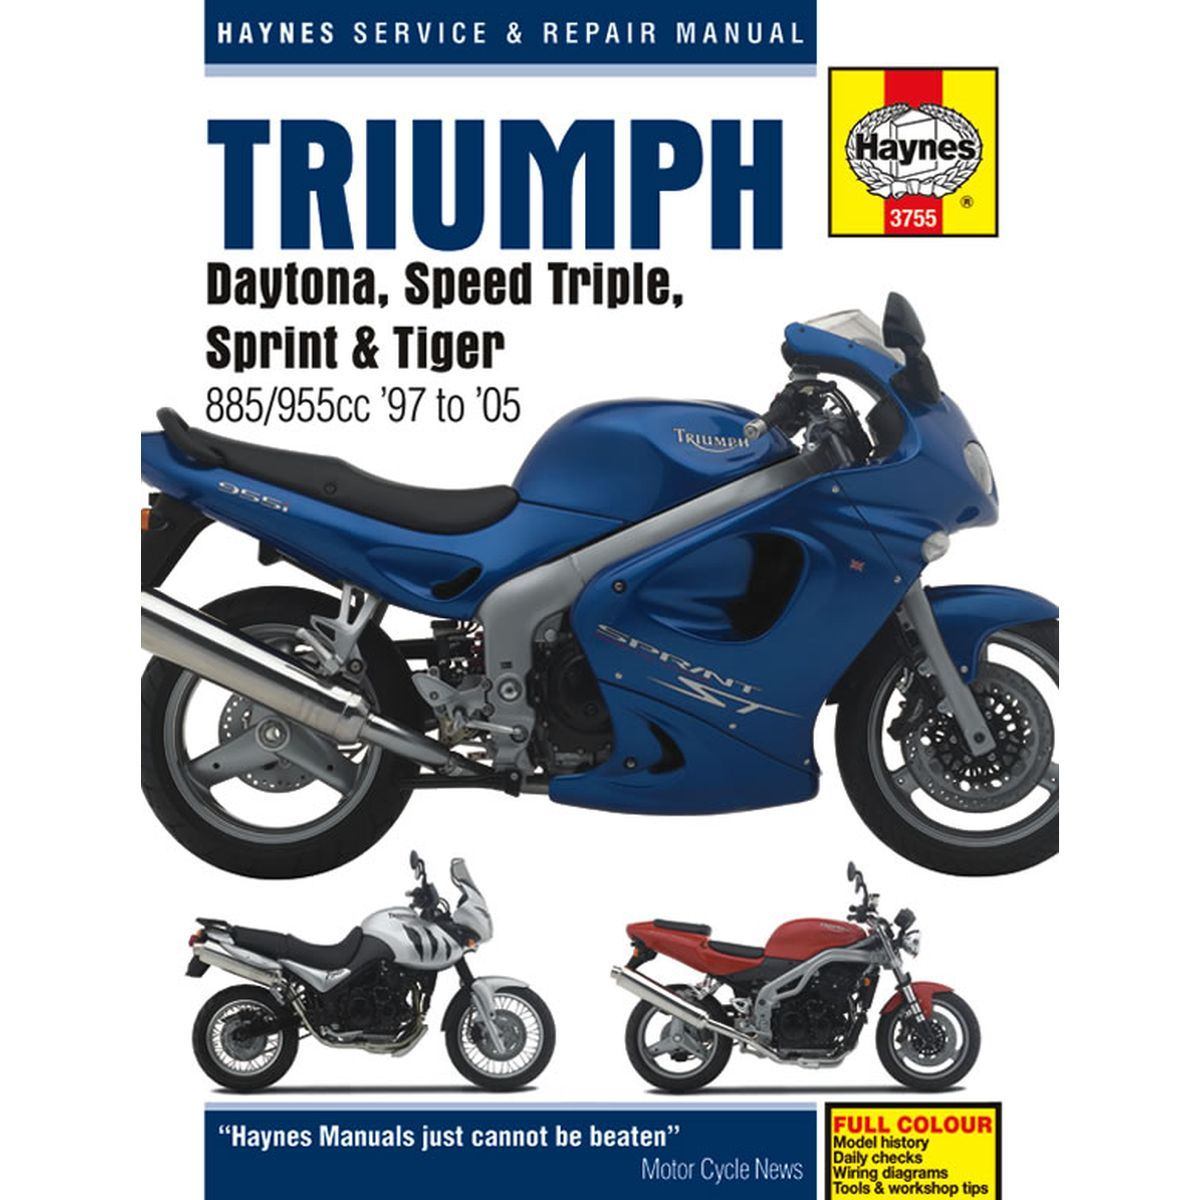 2000 Speed Triple Wiring Diagram List Of Schematic Circuit Ducati 888 Manual Haynes For Triumph 955i Efi Ebay Rh Co Uk